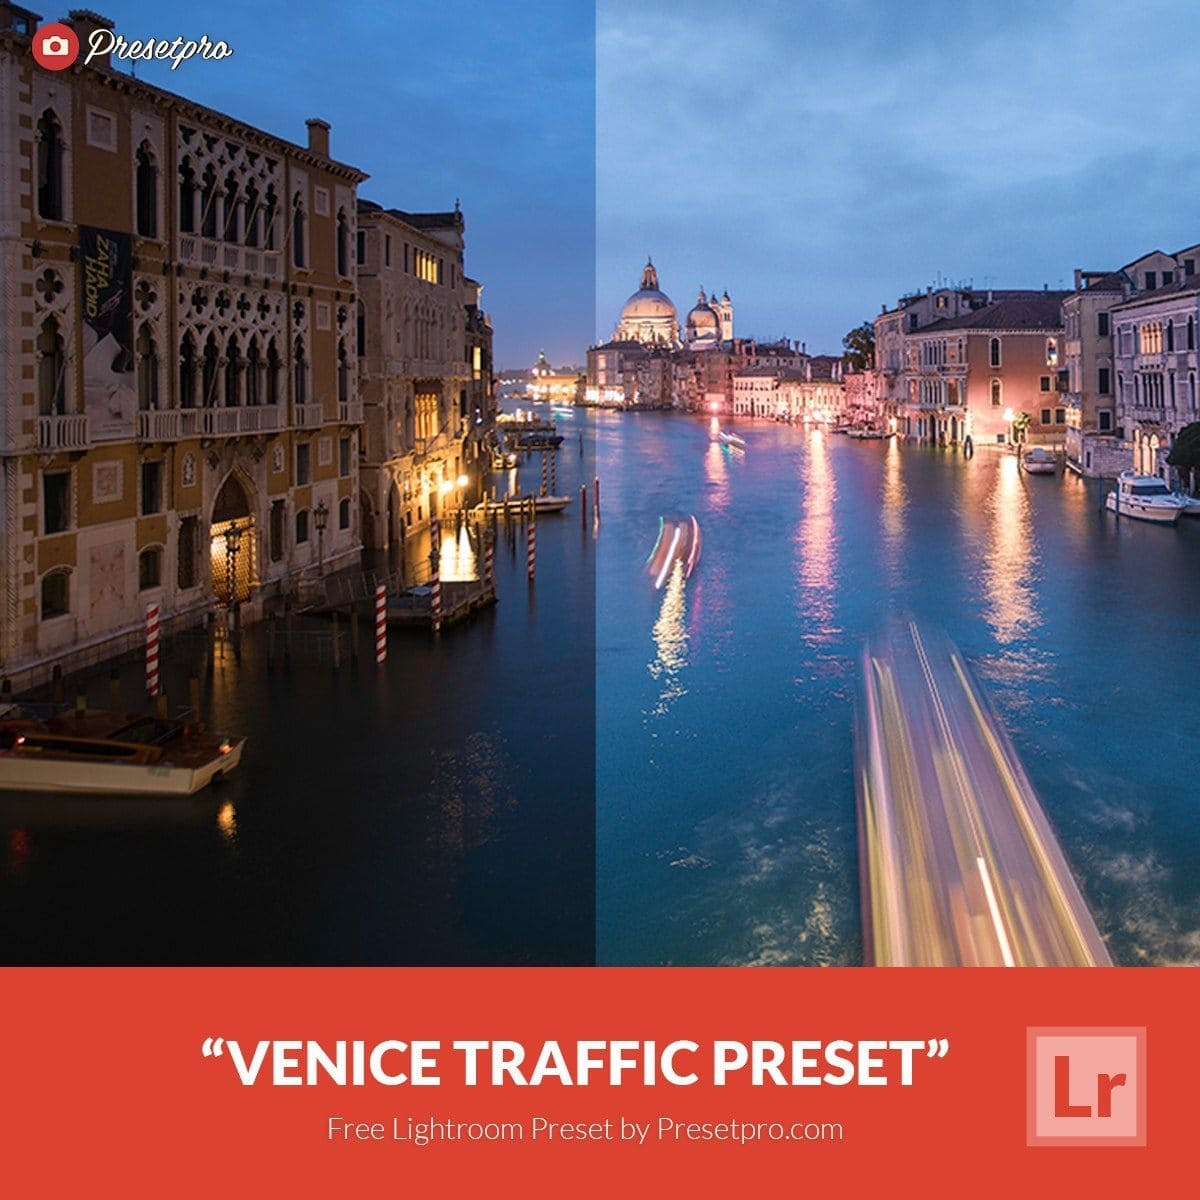 Free-Lightroom-Preset-Venice-Traffic-2